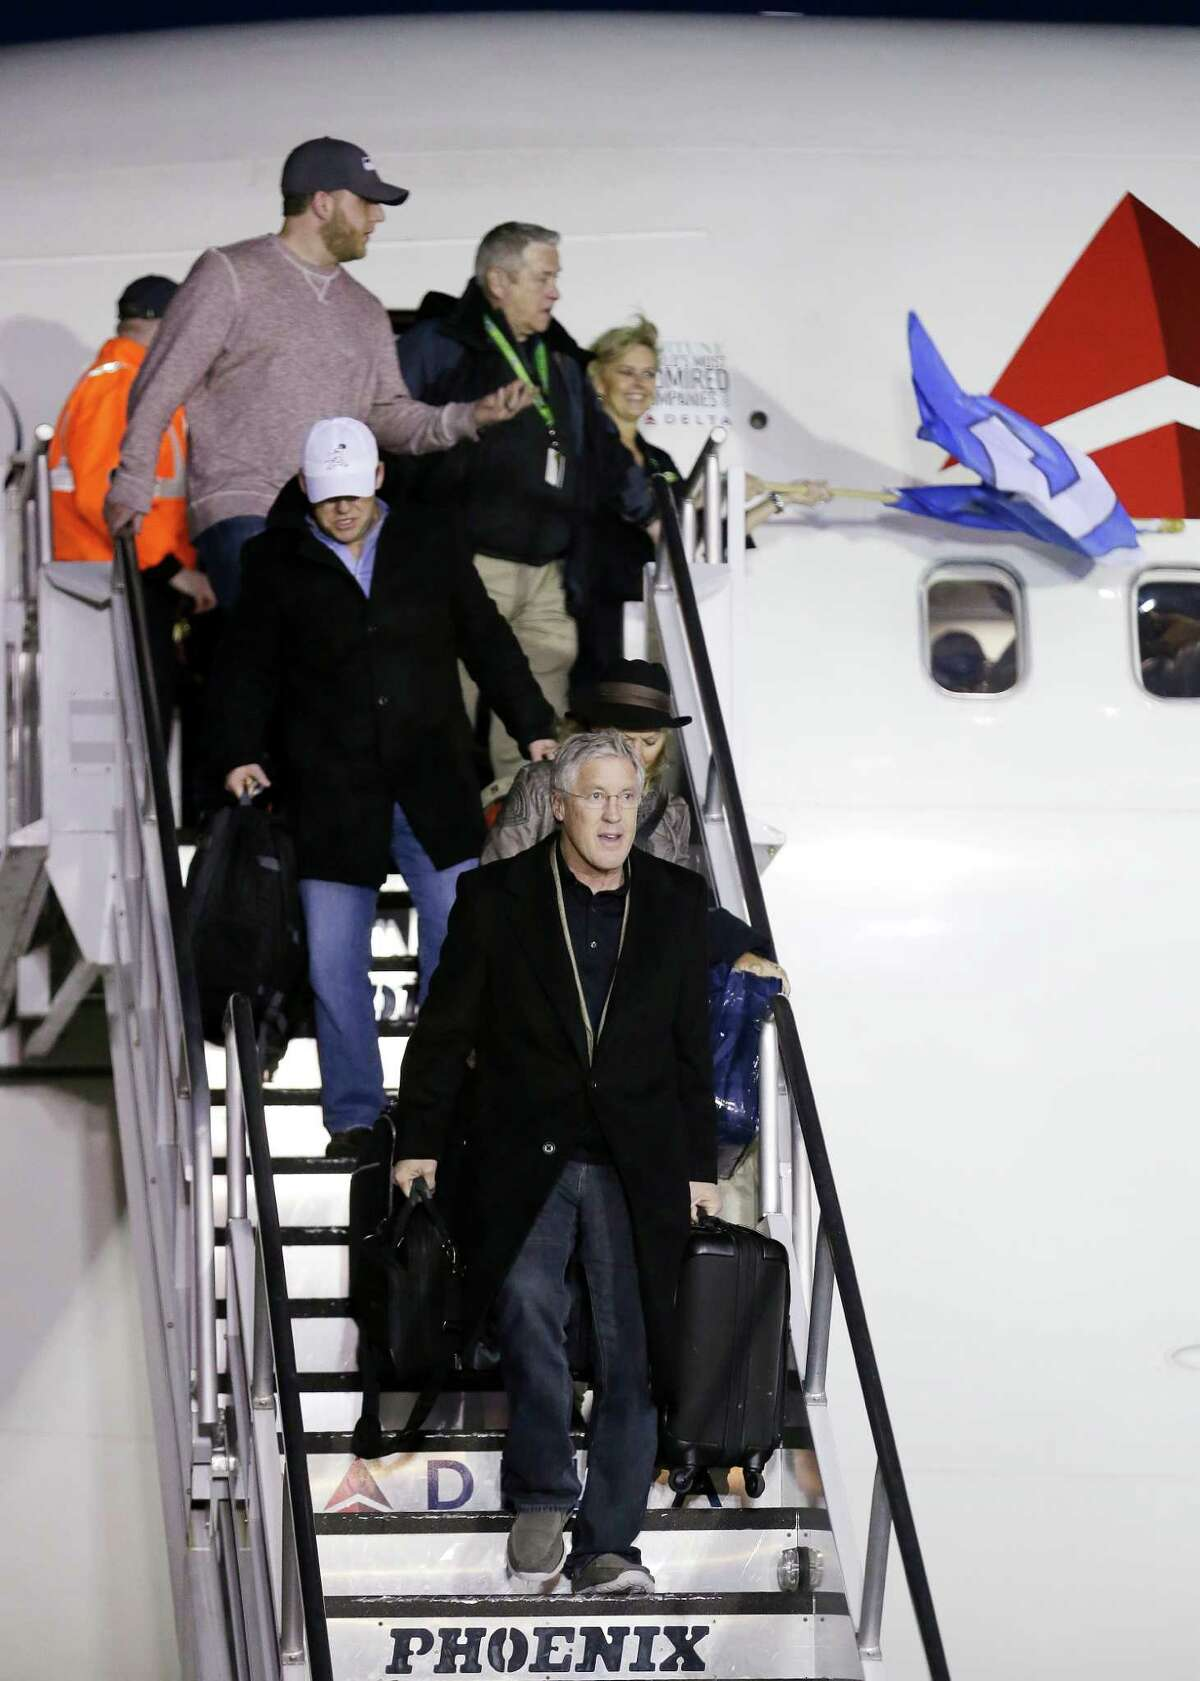 Seattle Seahawks head coach Pete Carroll, front, is followed by general manager John Schneider as he leads players and coaches off the plane upon the team's arrival Monday, Feb. 3, 2014, at Seattle-Tacoma International Airport in Seattle. The Seahawks beat the Denver Broncos 43-8 in the Super Bowl on Sunday. (AP Photo/Elaine Thompson)